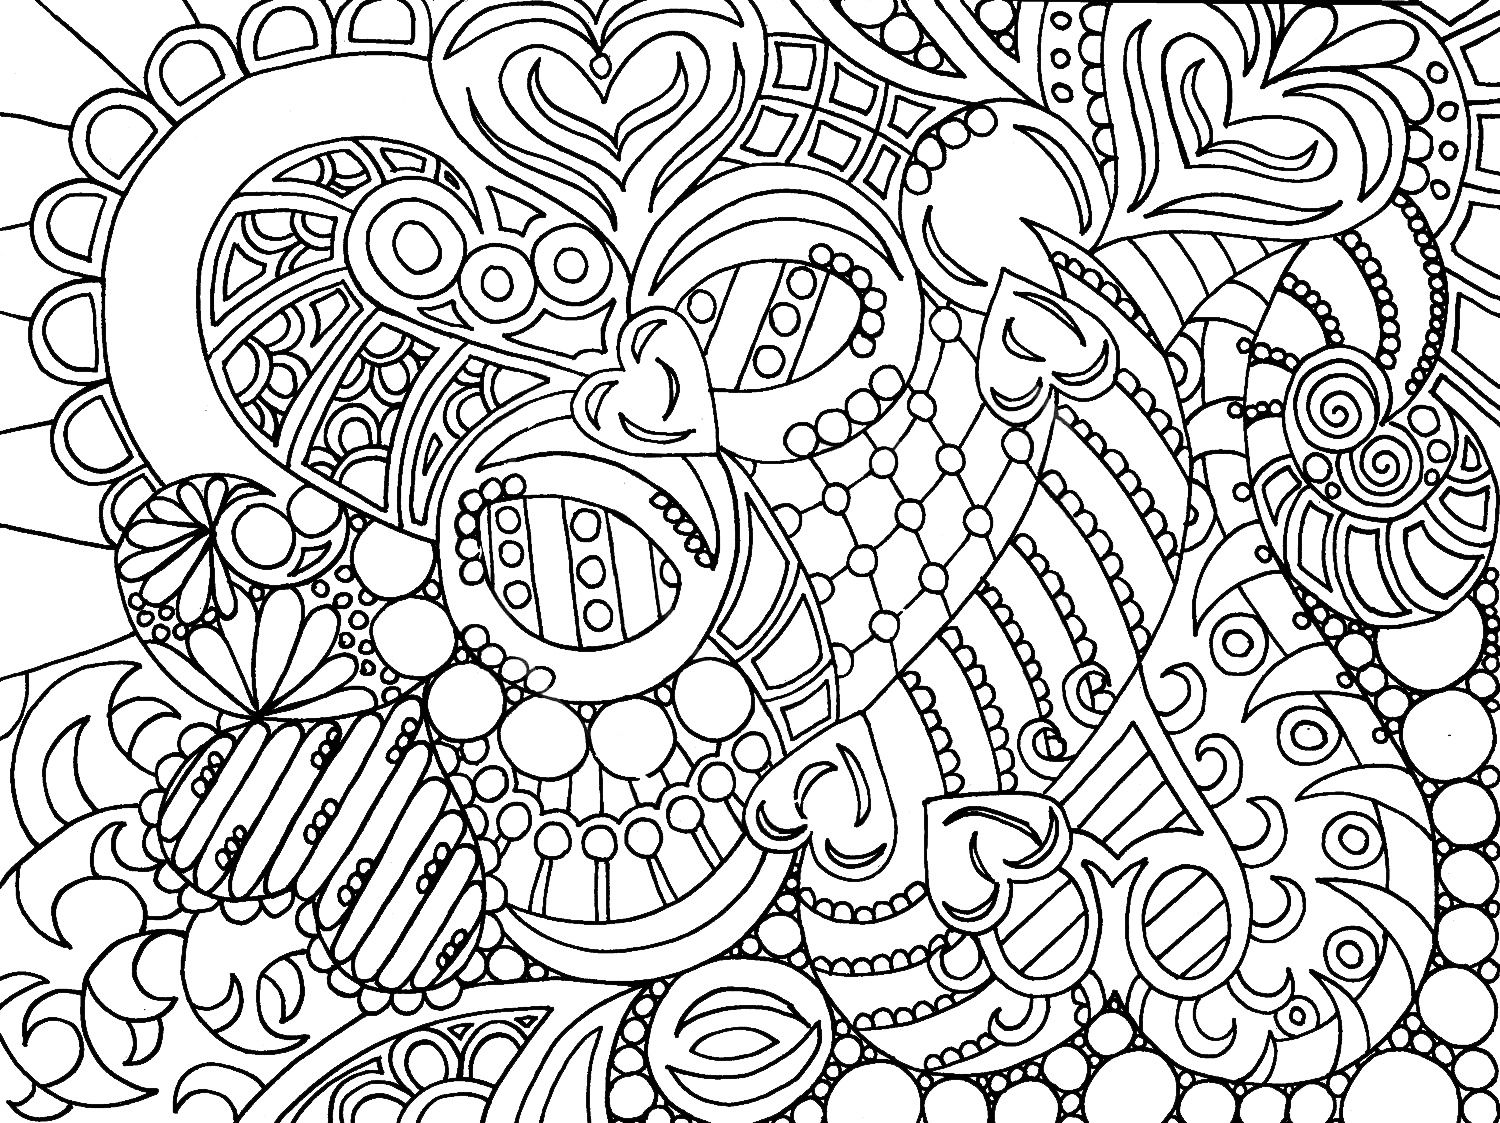 Color therapy anti stress coloring book app - Downloadable Colouring Pages For Relieving Stress And Anxiety